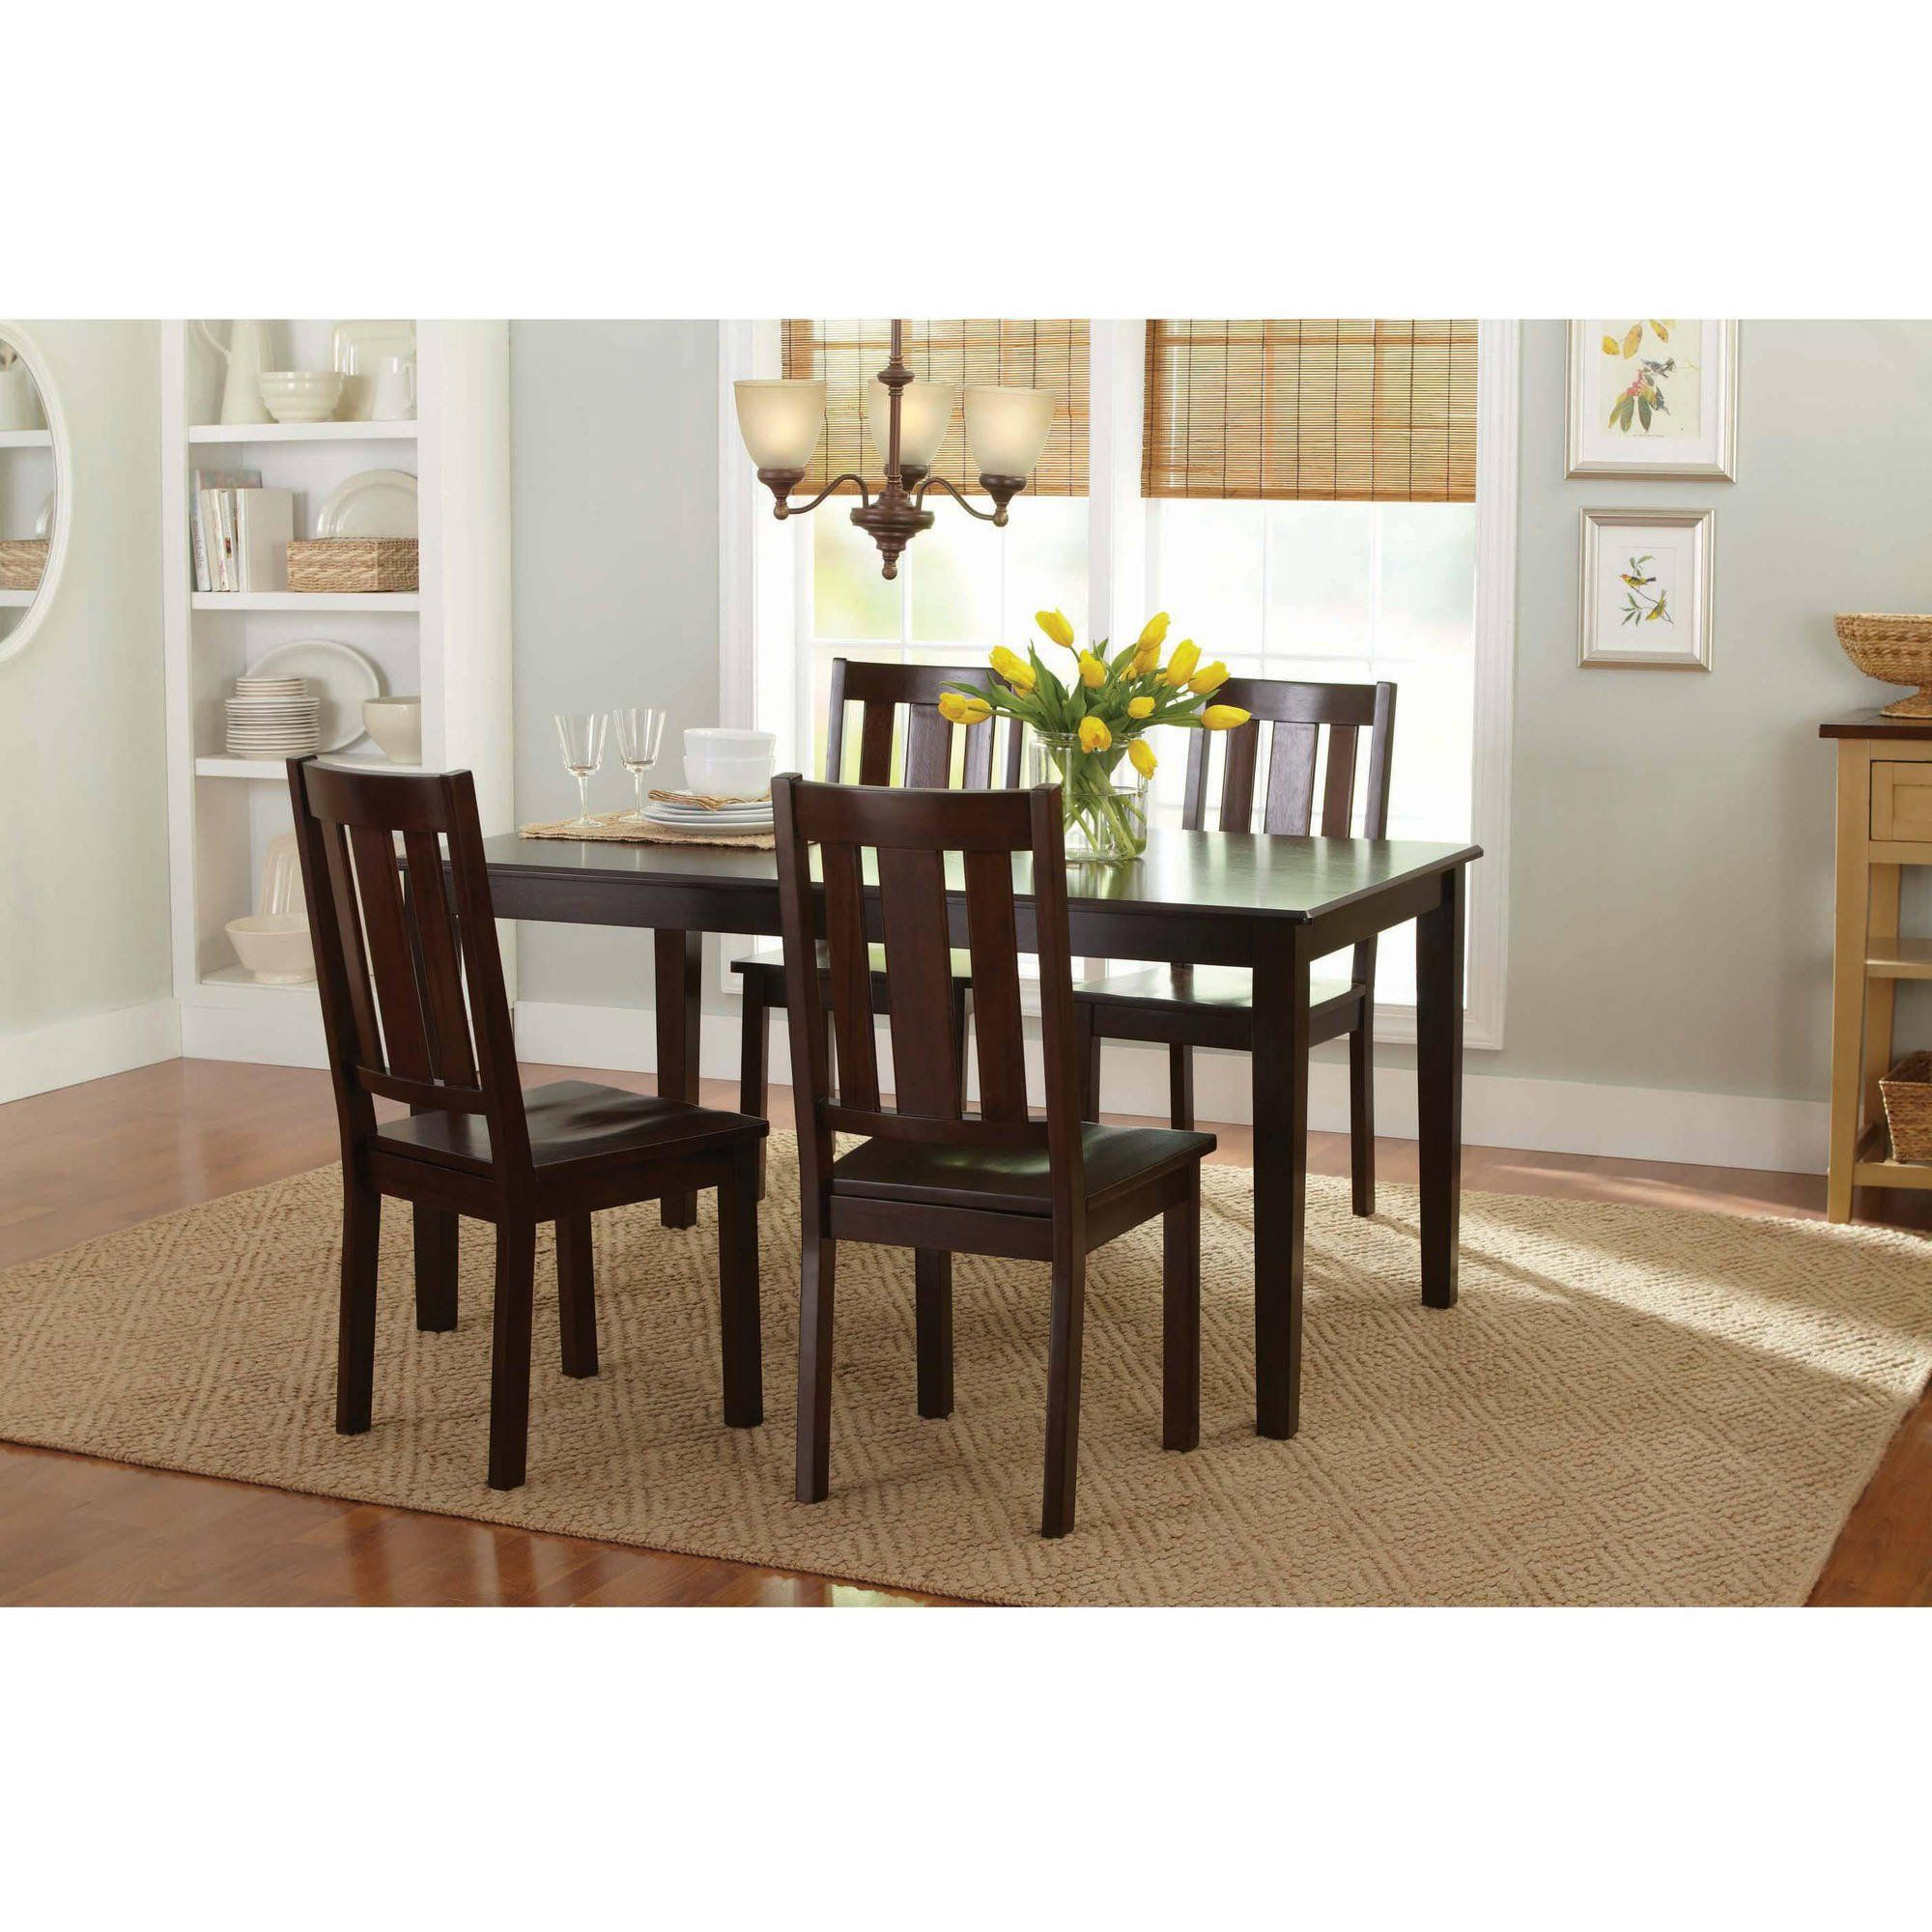 fff84a8e63312ea58ebe6e44c4562d73 - Better Homes And Gardens Bankston Dining Chair White 2 Pack